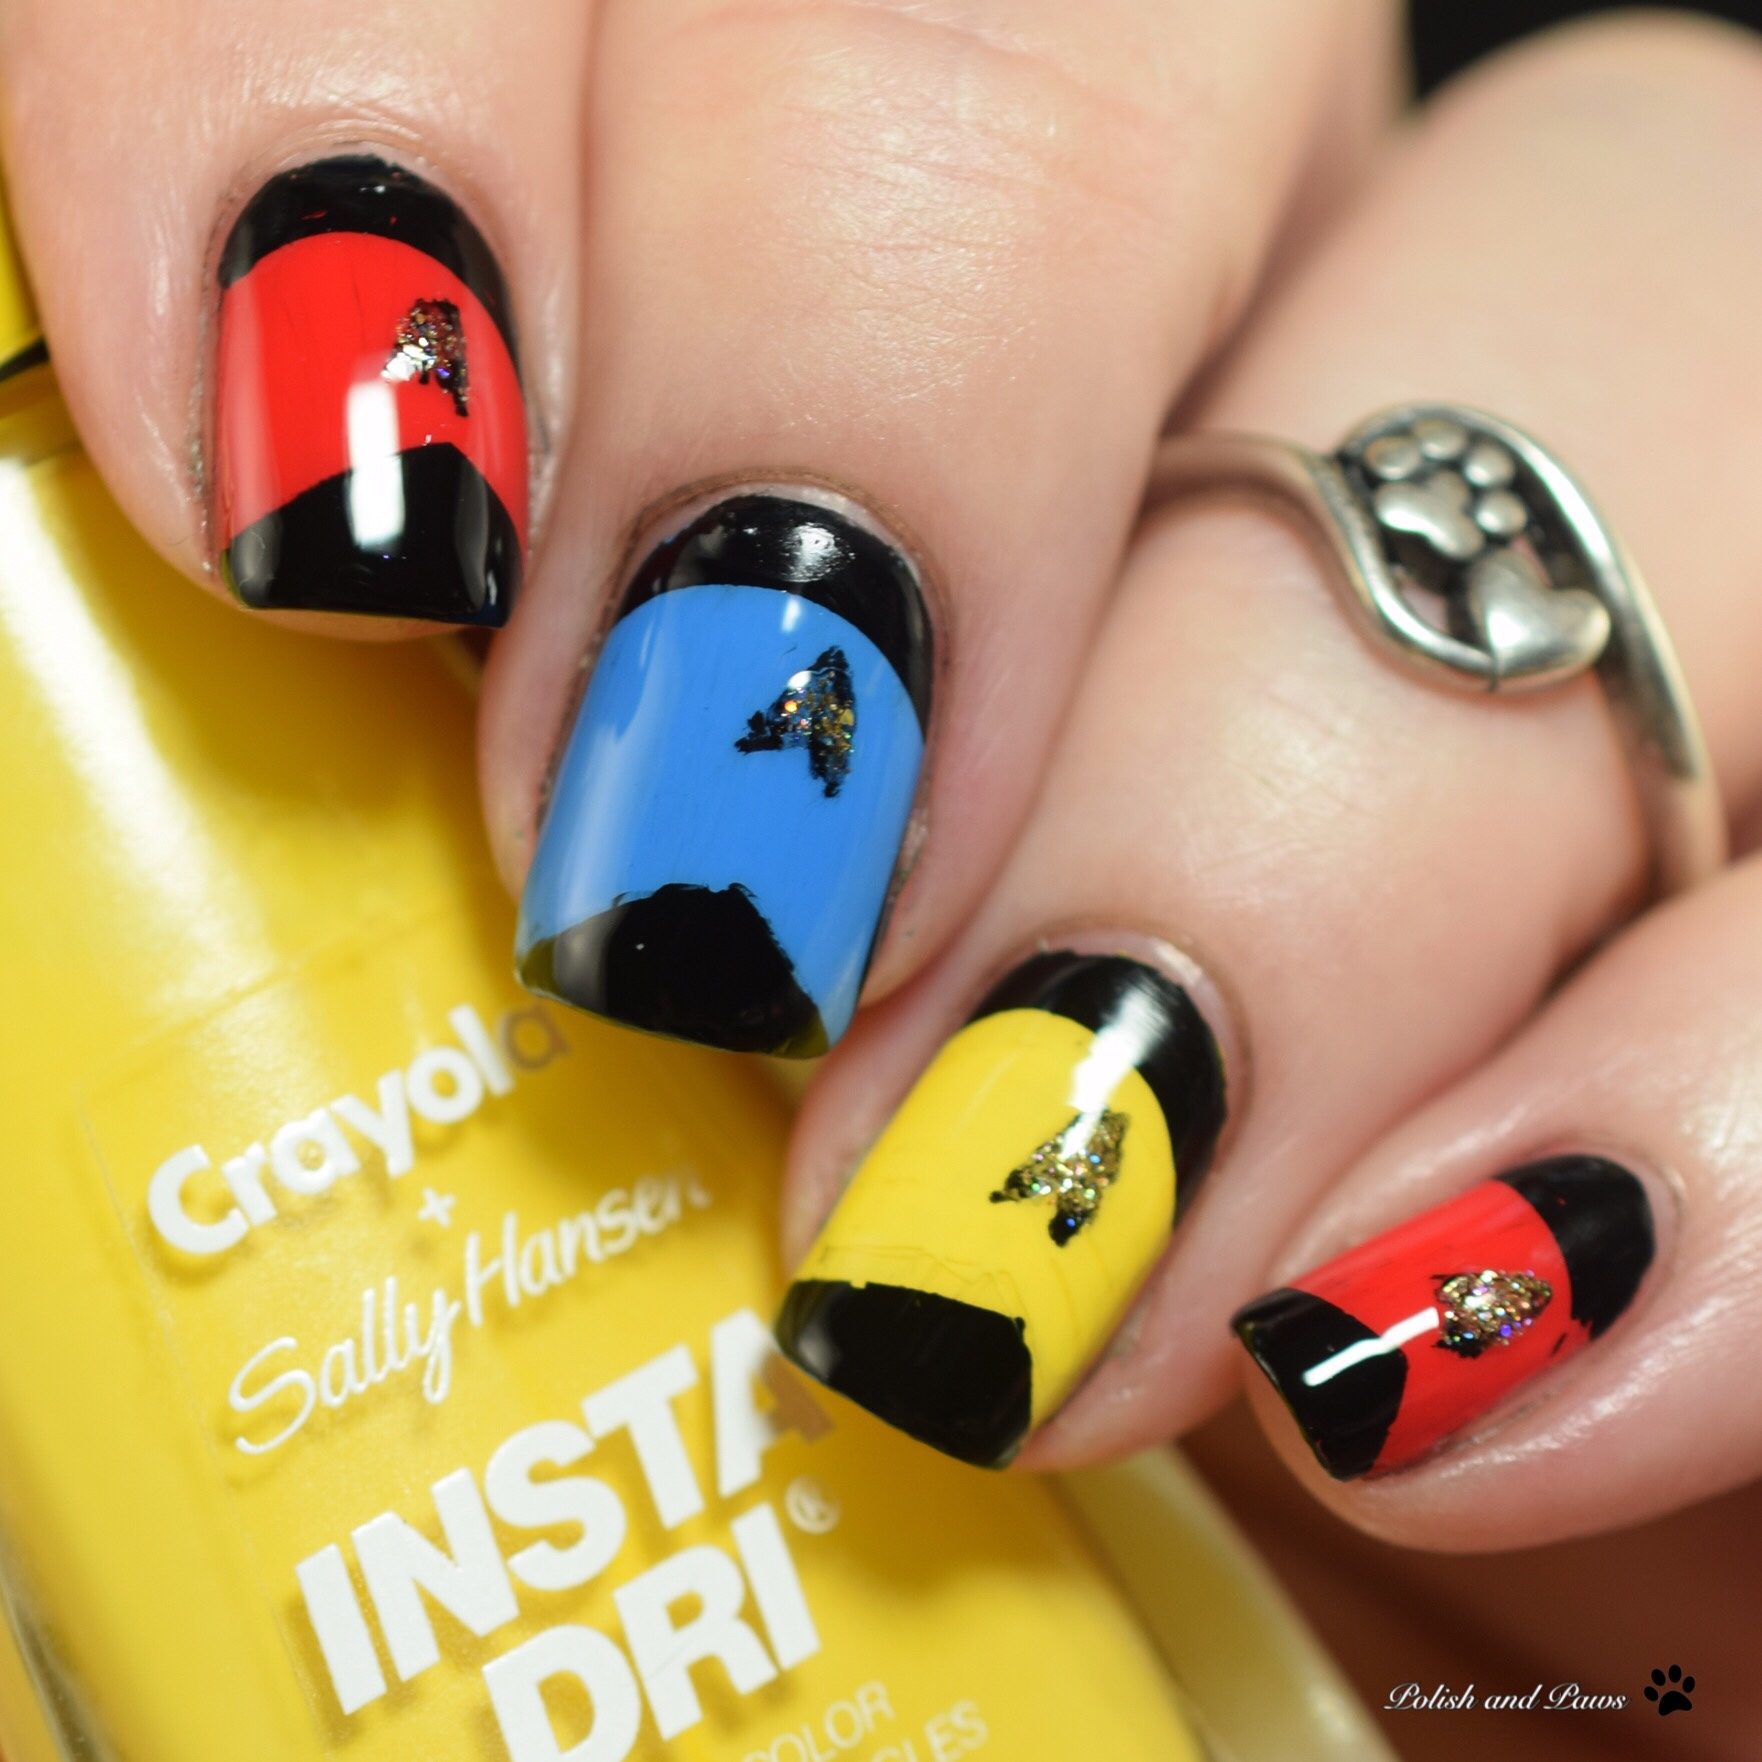 Polish and Paws Star Trek inspired Nail Art